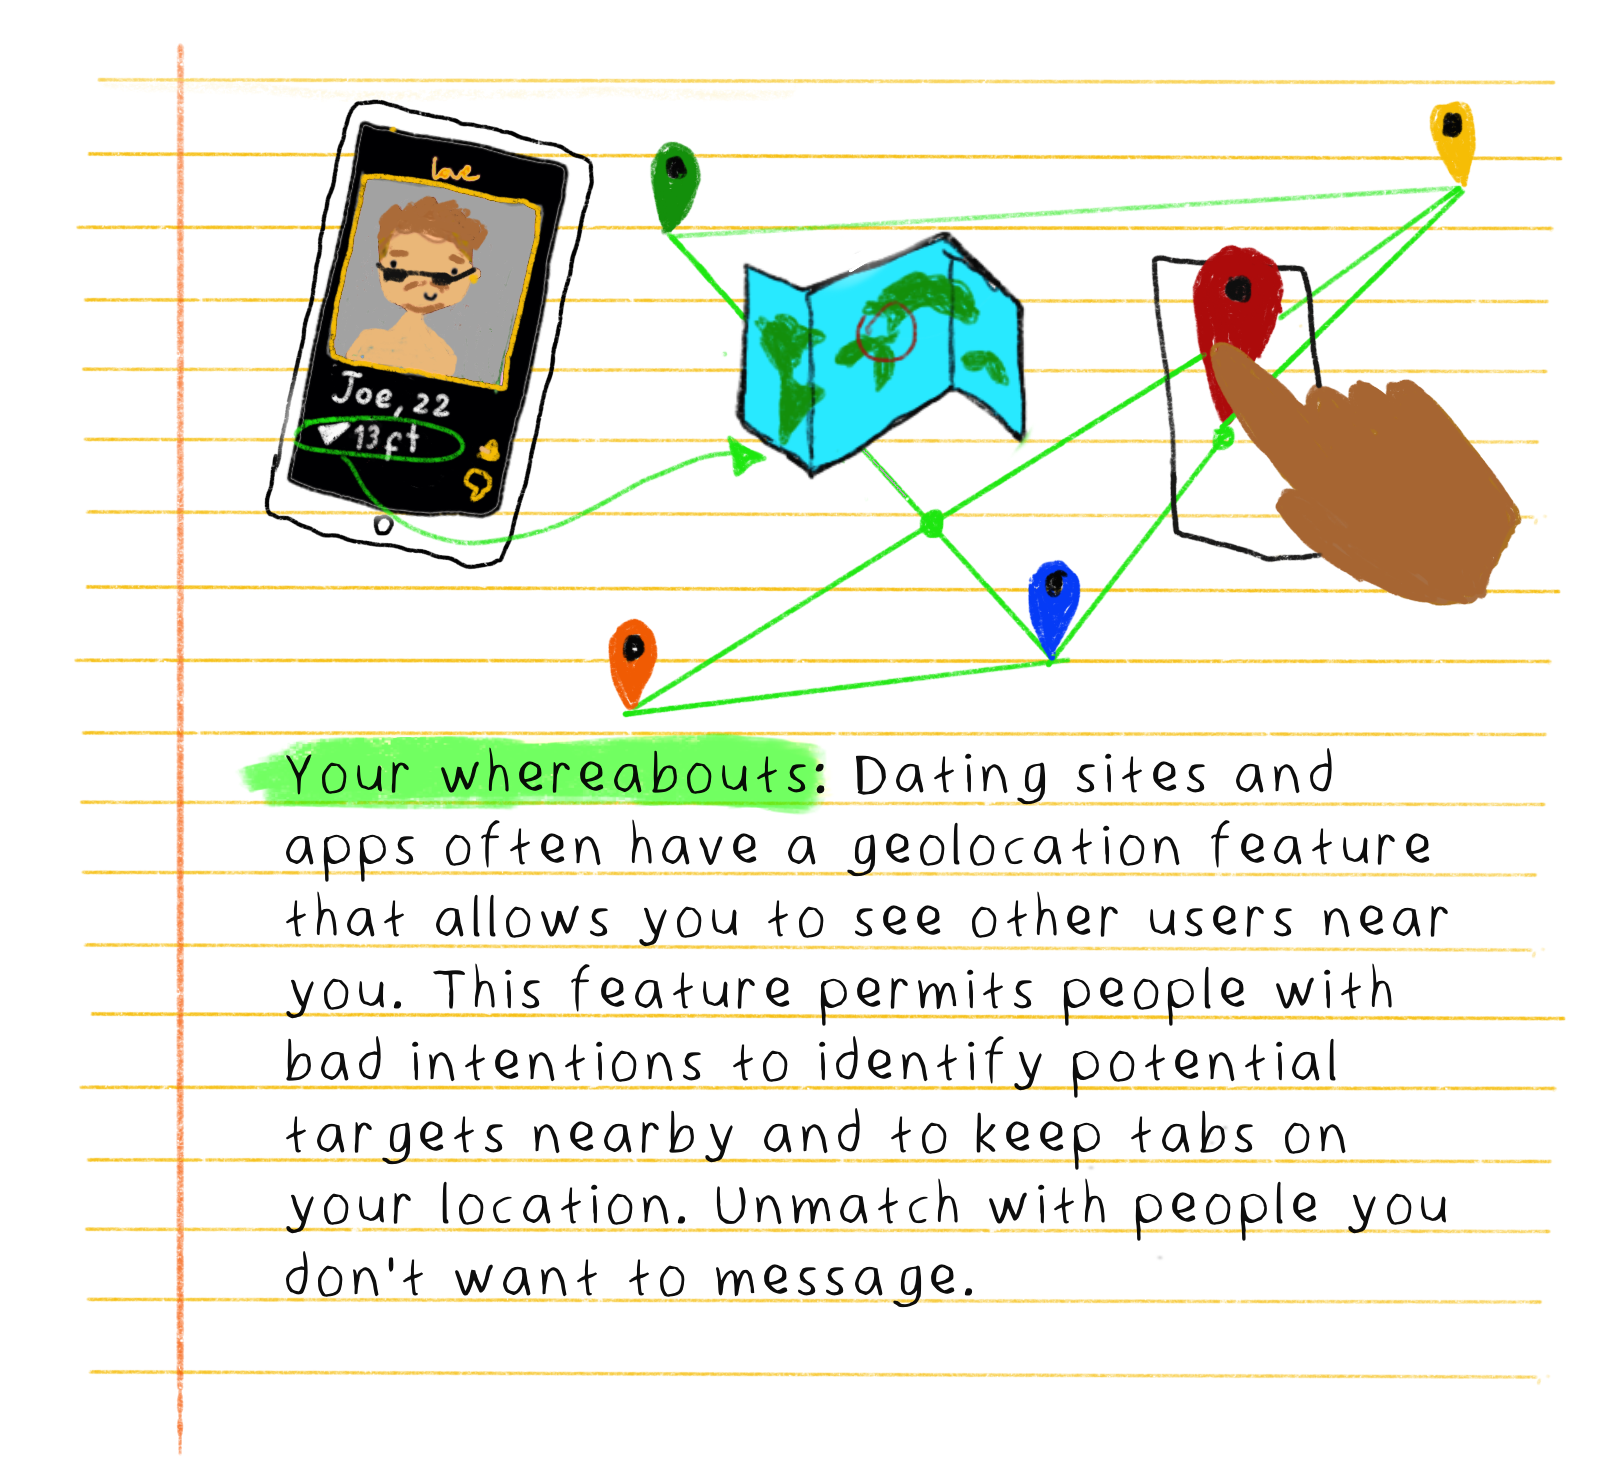 Your whereabouts: Dating sites and apps often have a geolocation feature that allows you to see other users near you. This feature permits people with bad intentions to identify potential targets nearby and to keep tabs on your location. Unmatch with people you don't want to message.